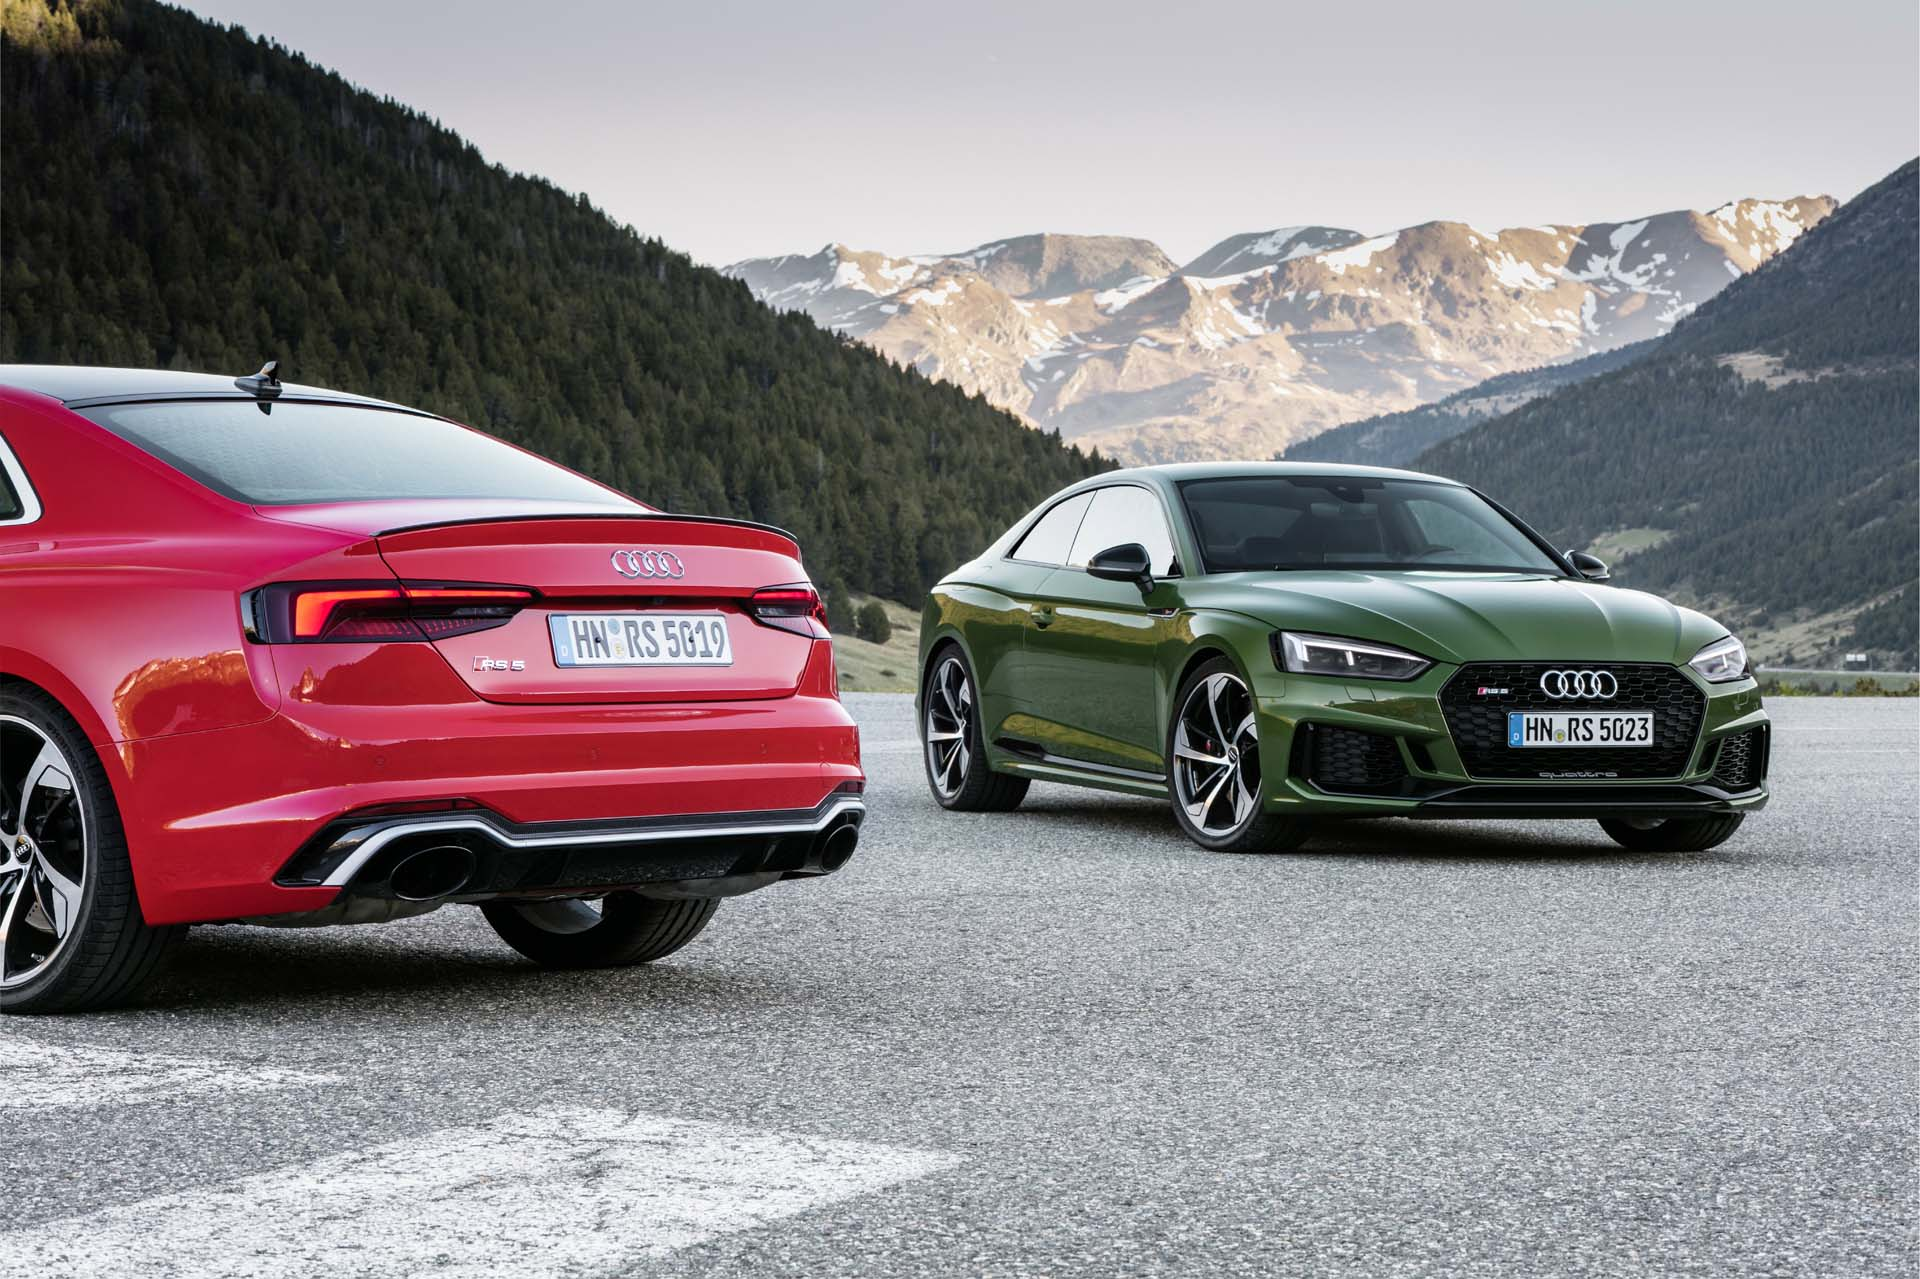 Audi Sport underquotes its cars' performance numbers